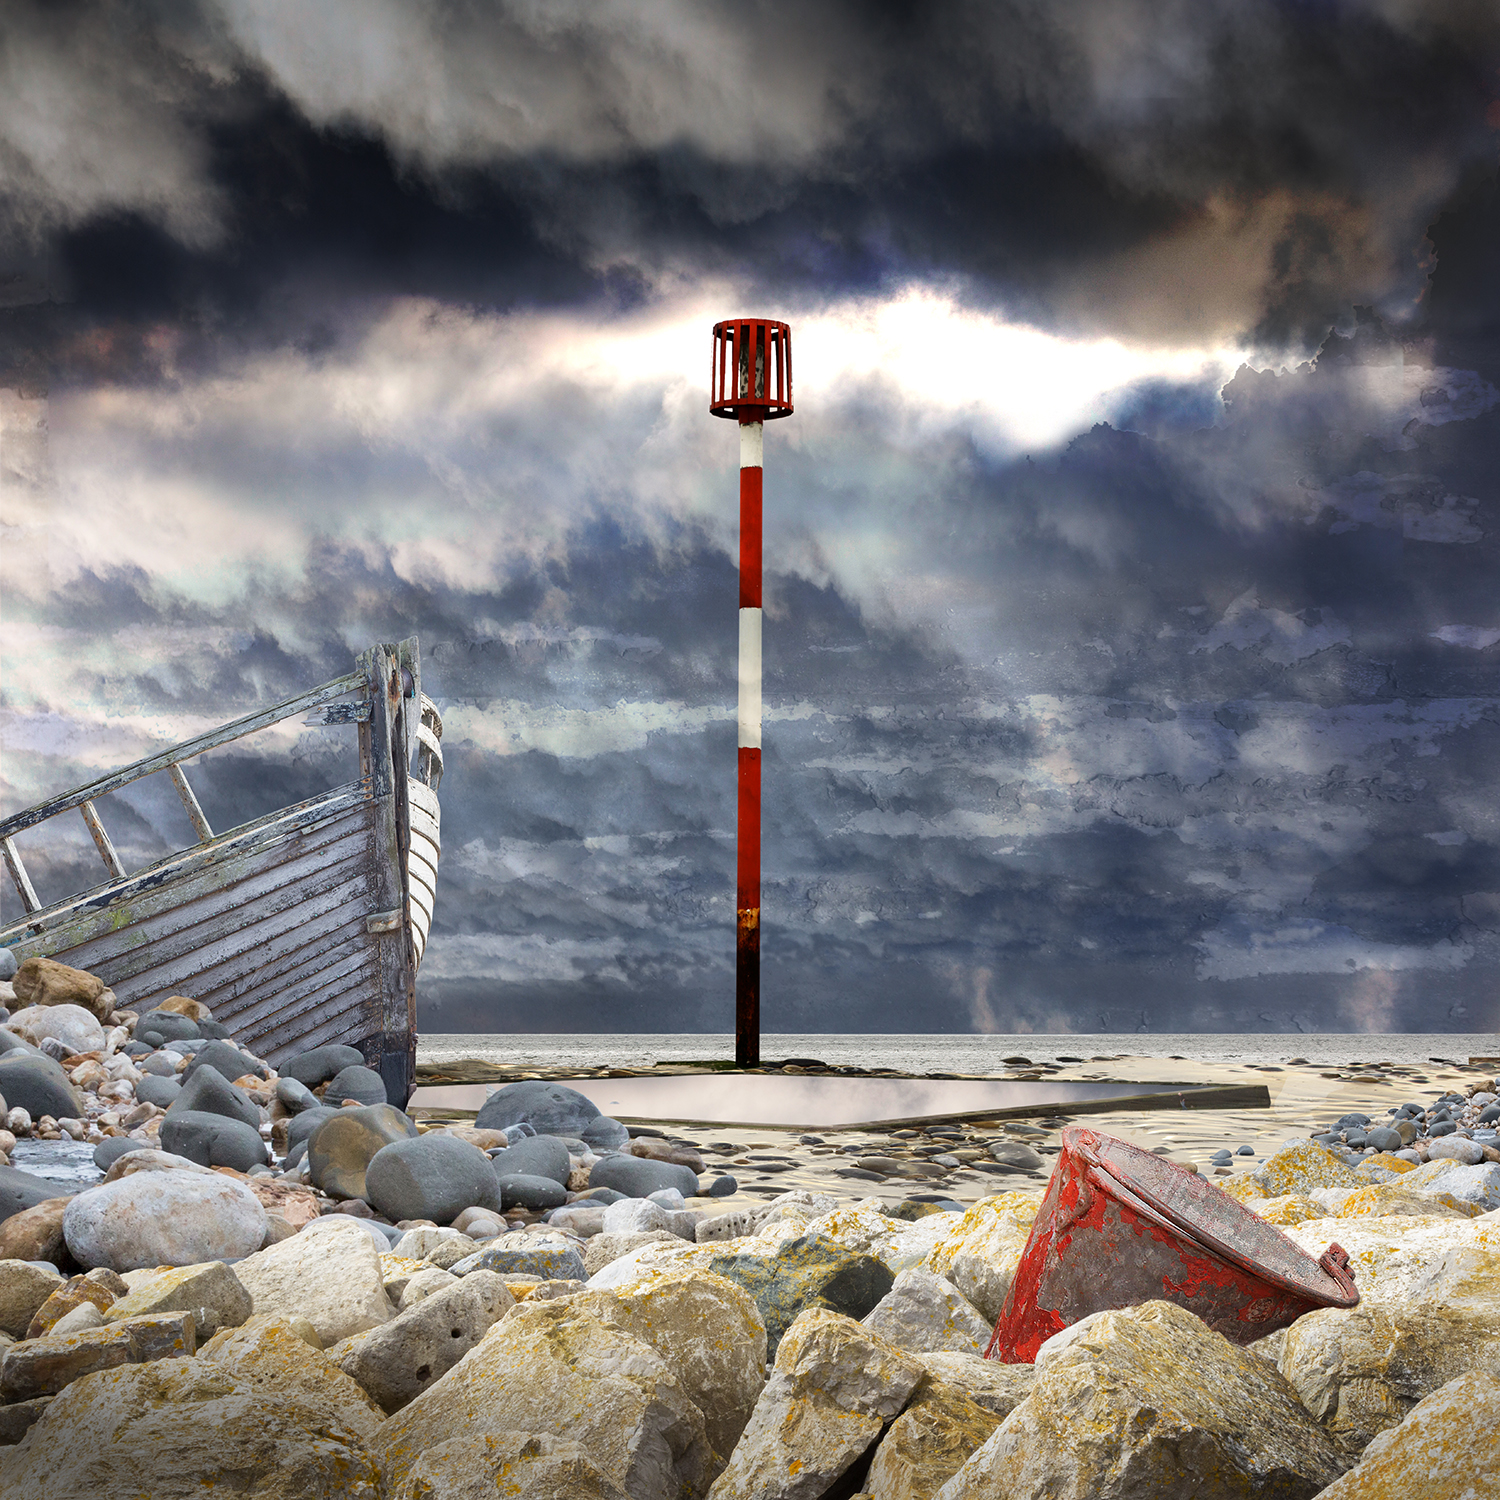 Claire Gill, Artist, Digital Photomontage, The Wasteland by TS Eliot, What the Thunder Said, On Margate Sands, Lombard Street Gallery, The Wasteland, TS Eliot, Photomontage, Limited Edition Print, Margate, sea